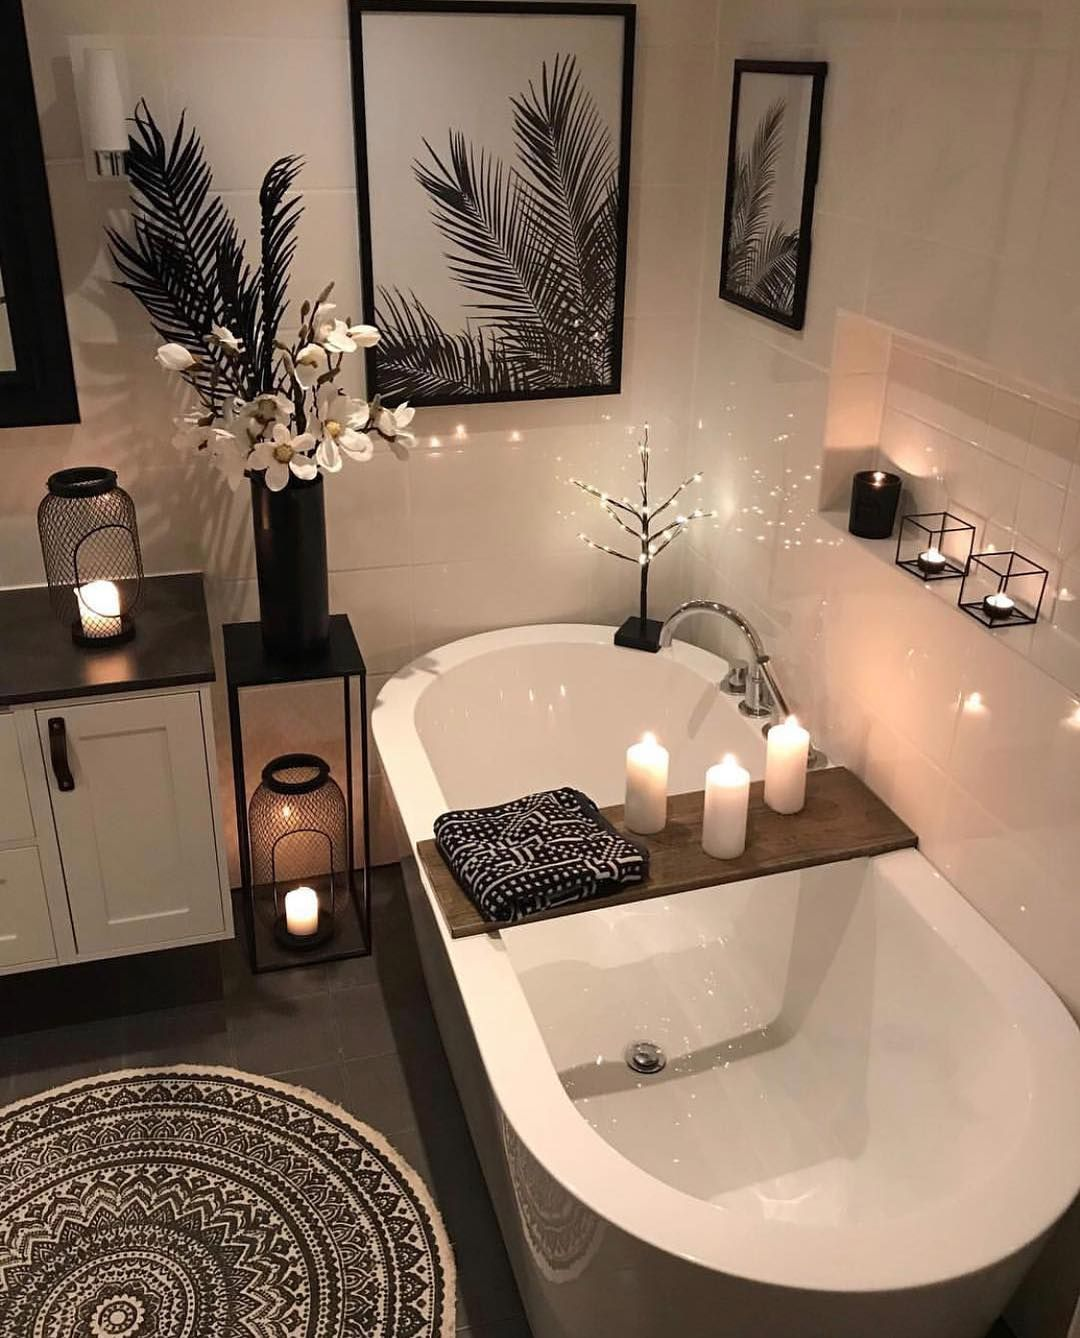 New The 10 All Time Best Home Decor Right Now Home Decor By Estelle Arno I L L U M I N A T E Bathroom Inspiration Contemporary Bathrooms Bathroom Decor